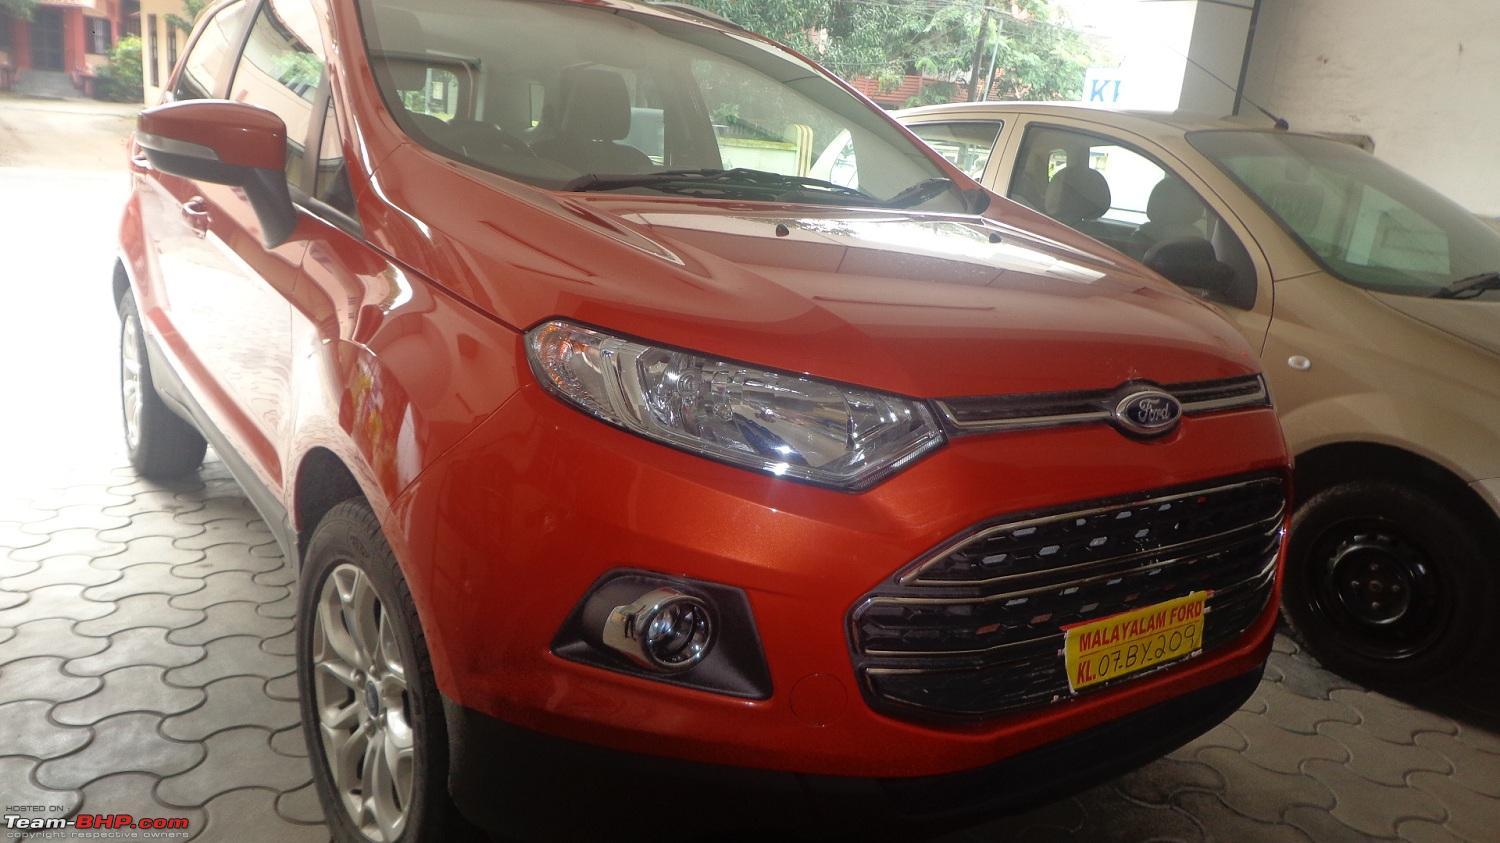 Ford ecosport official review dsc00132a jpg